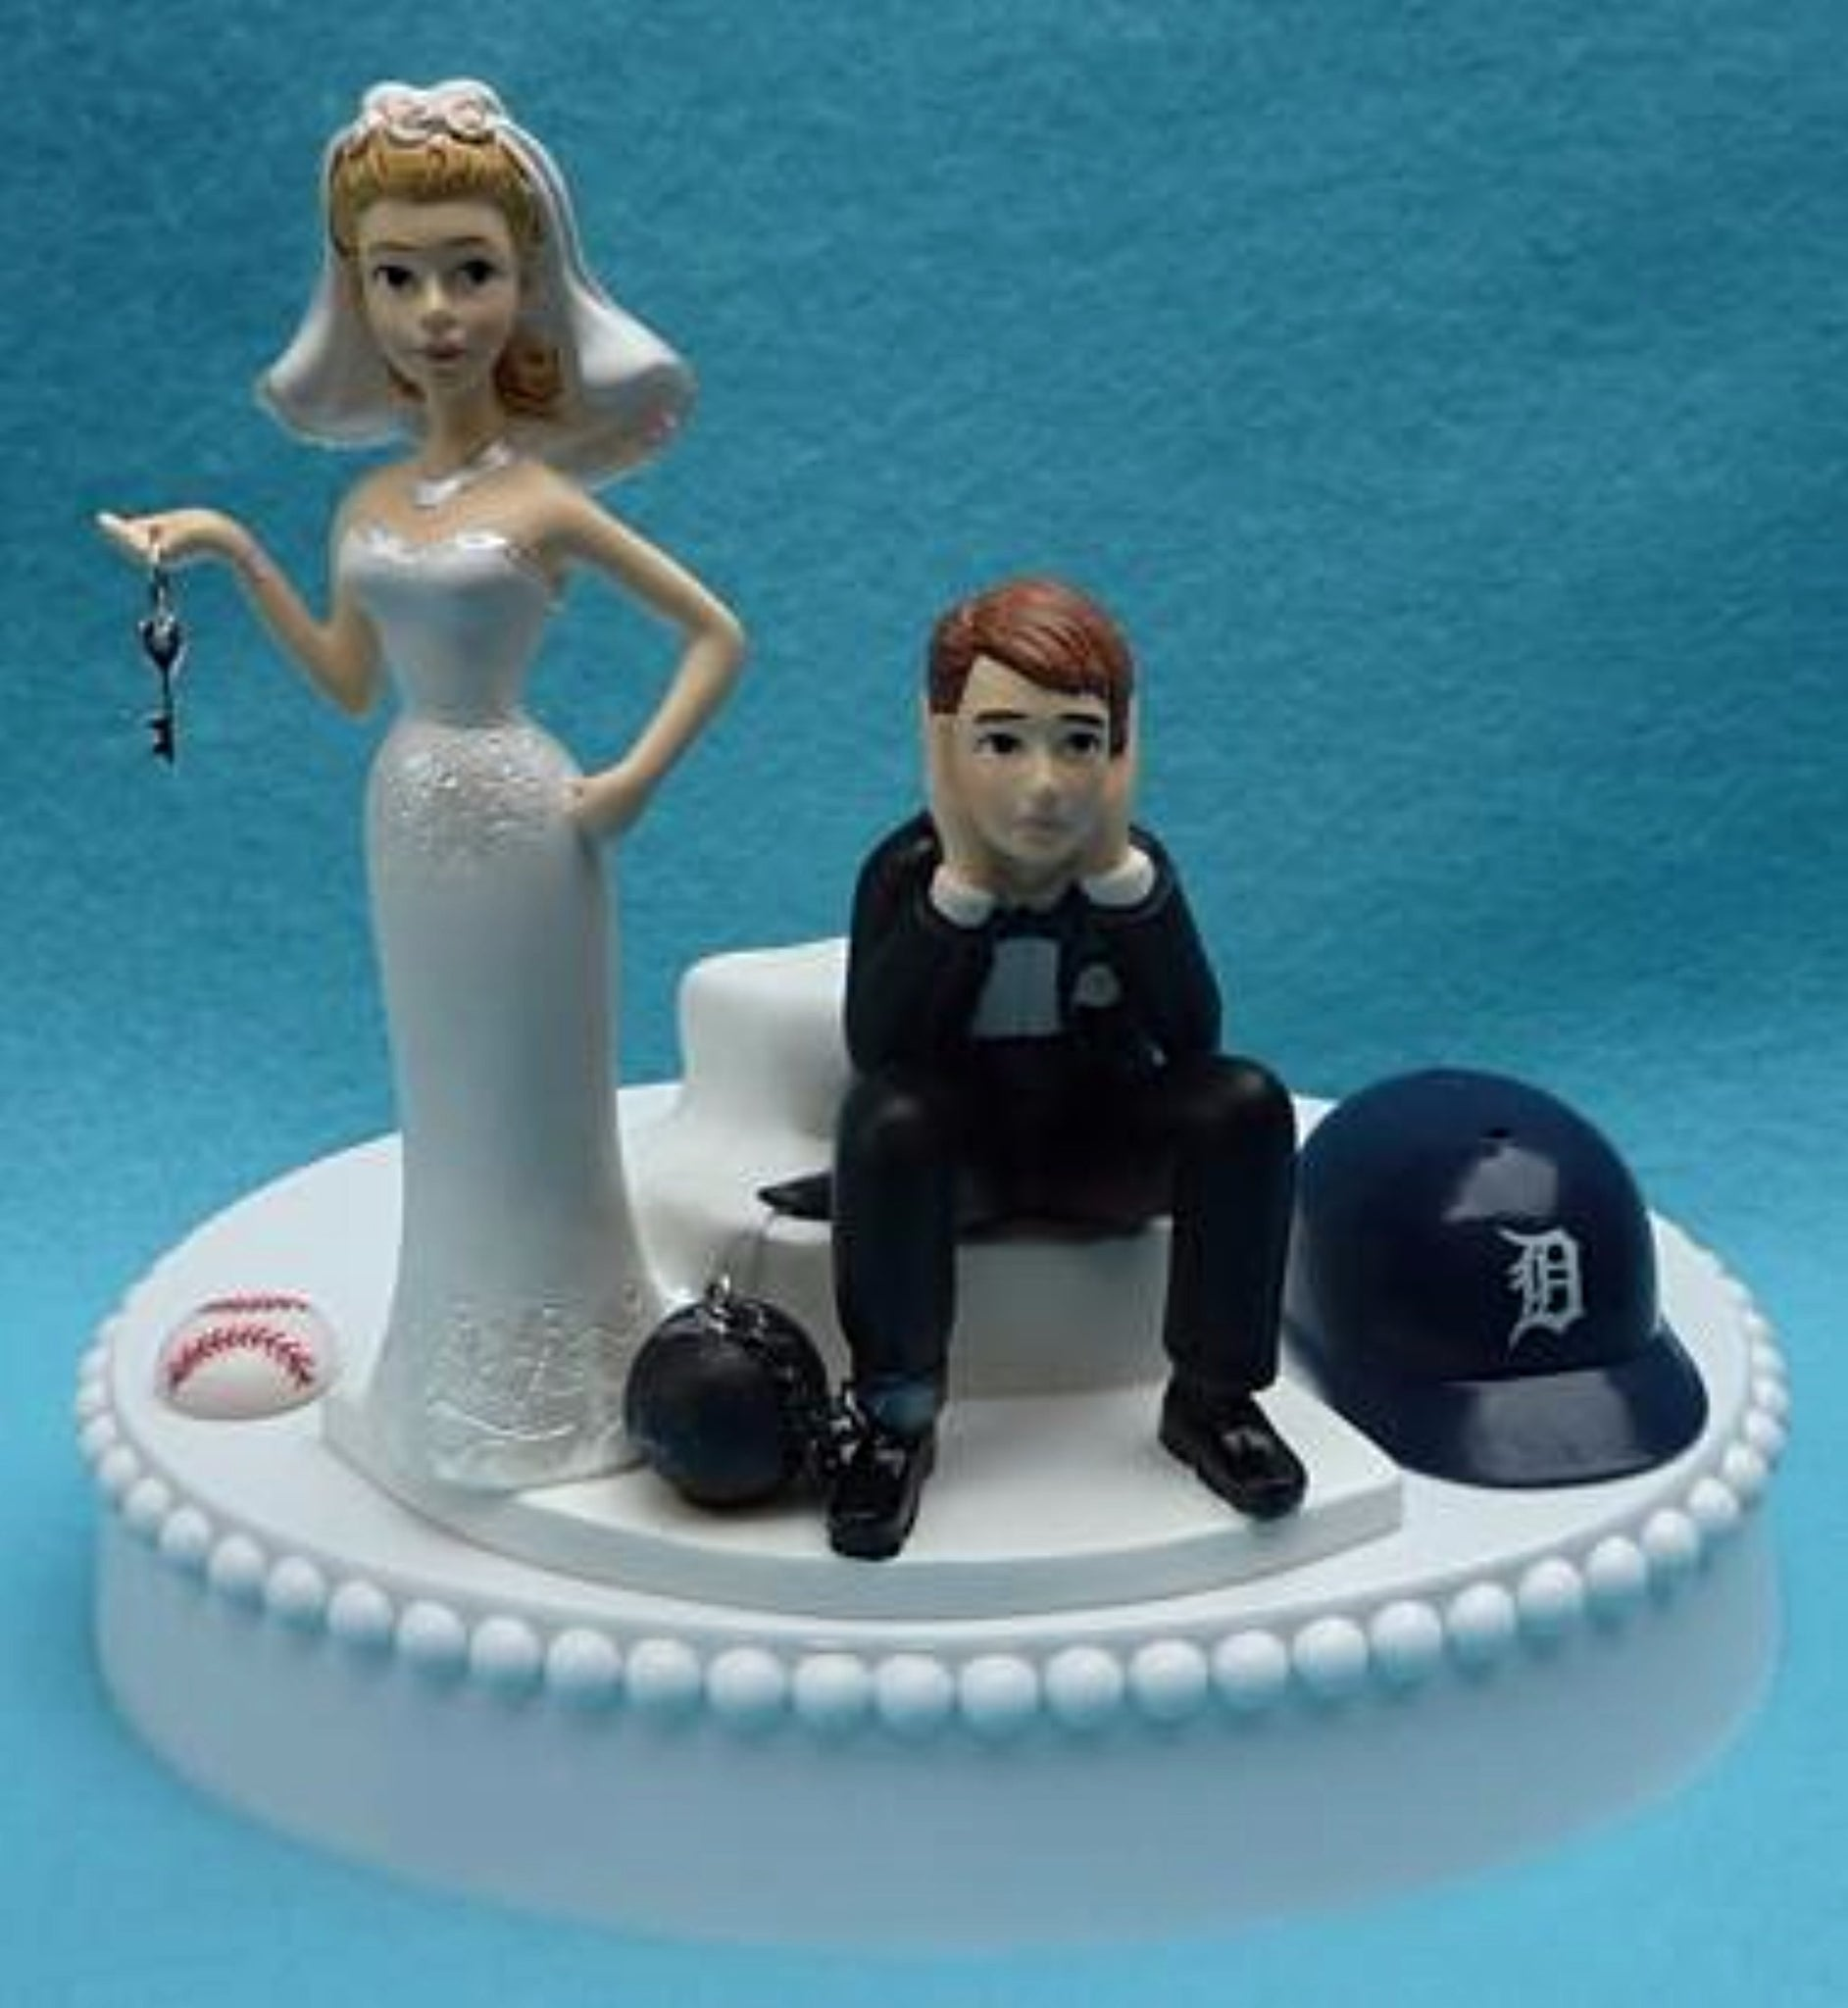 Wedding Cake Topper - Detroit Tigers Baseball Themed Key